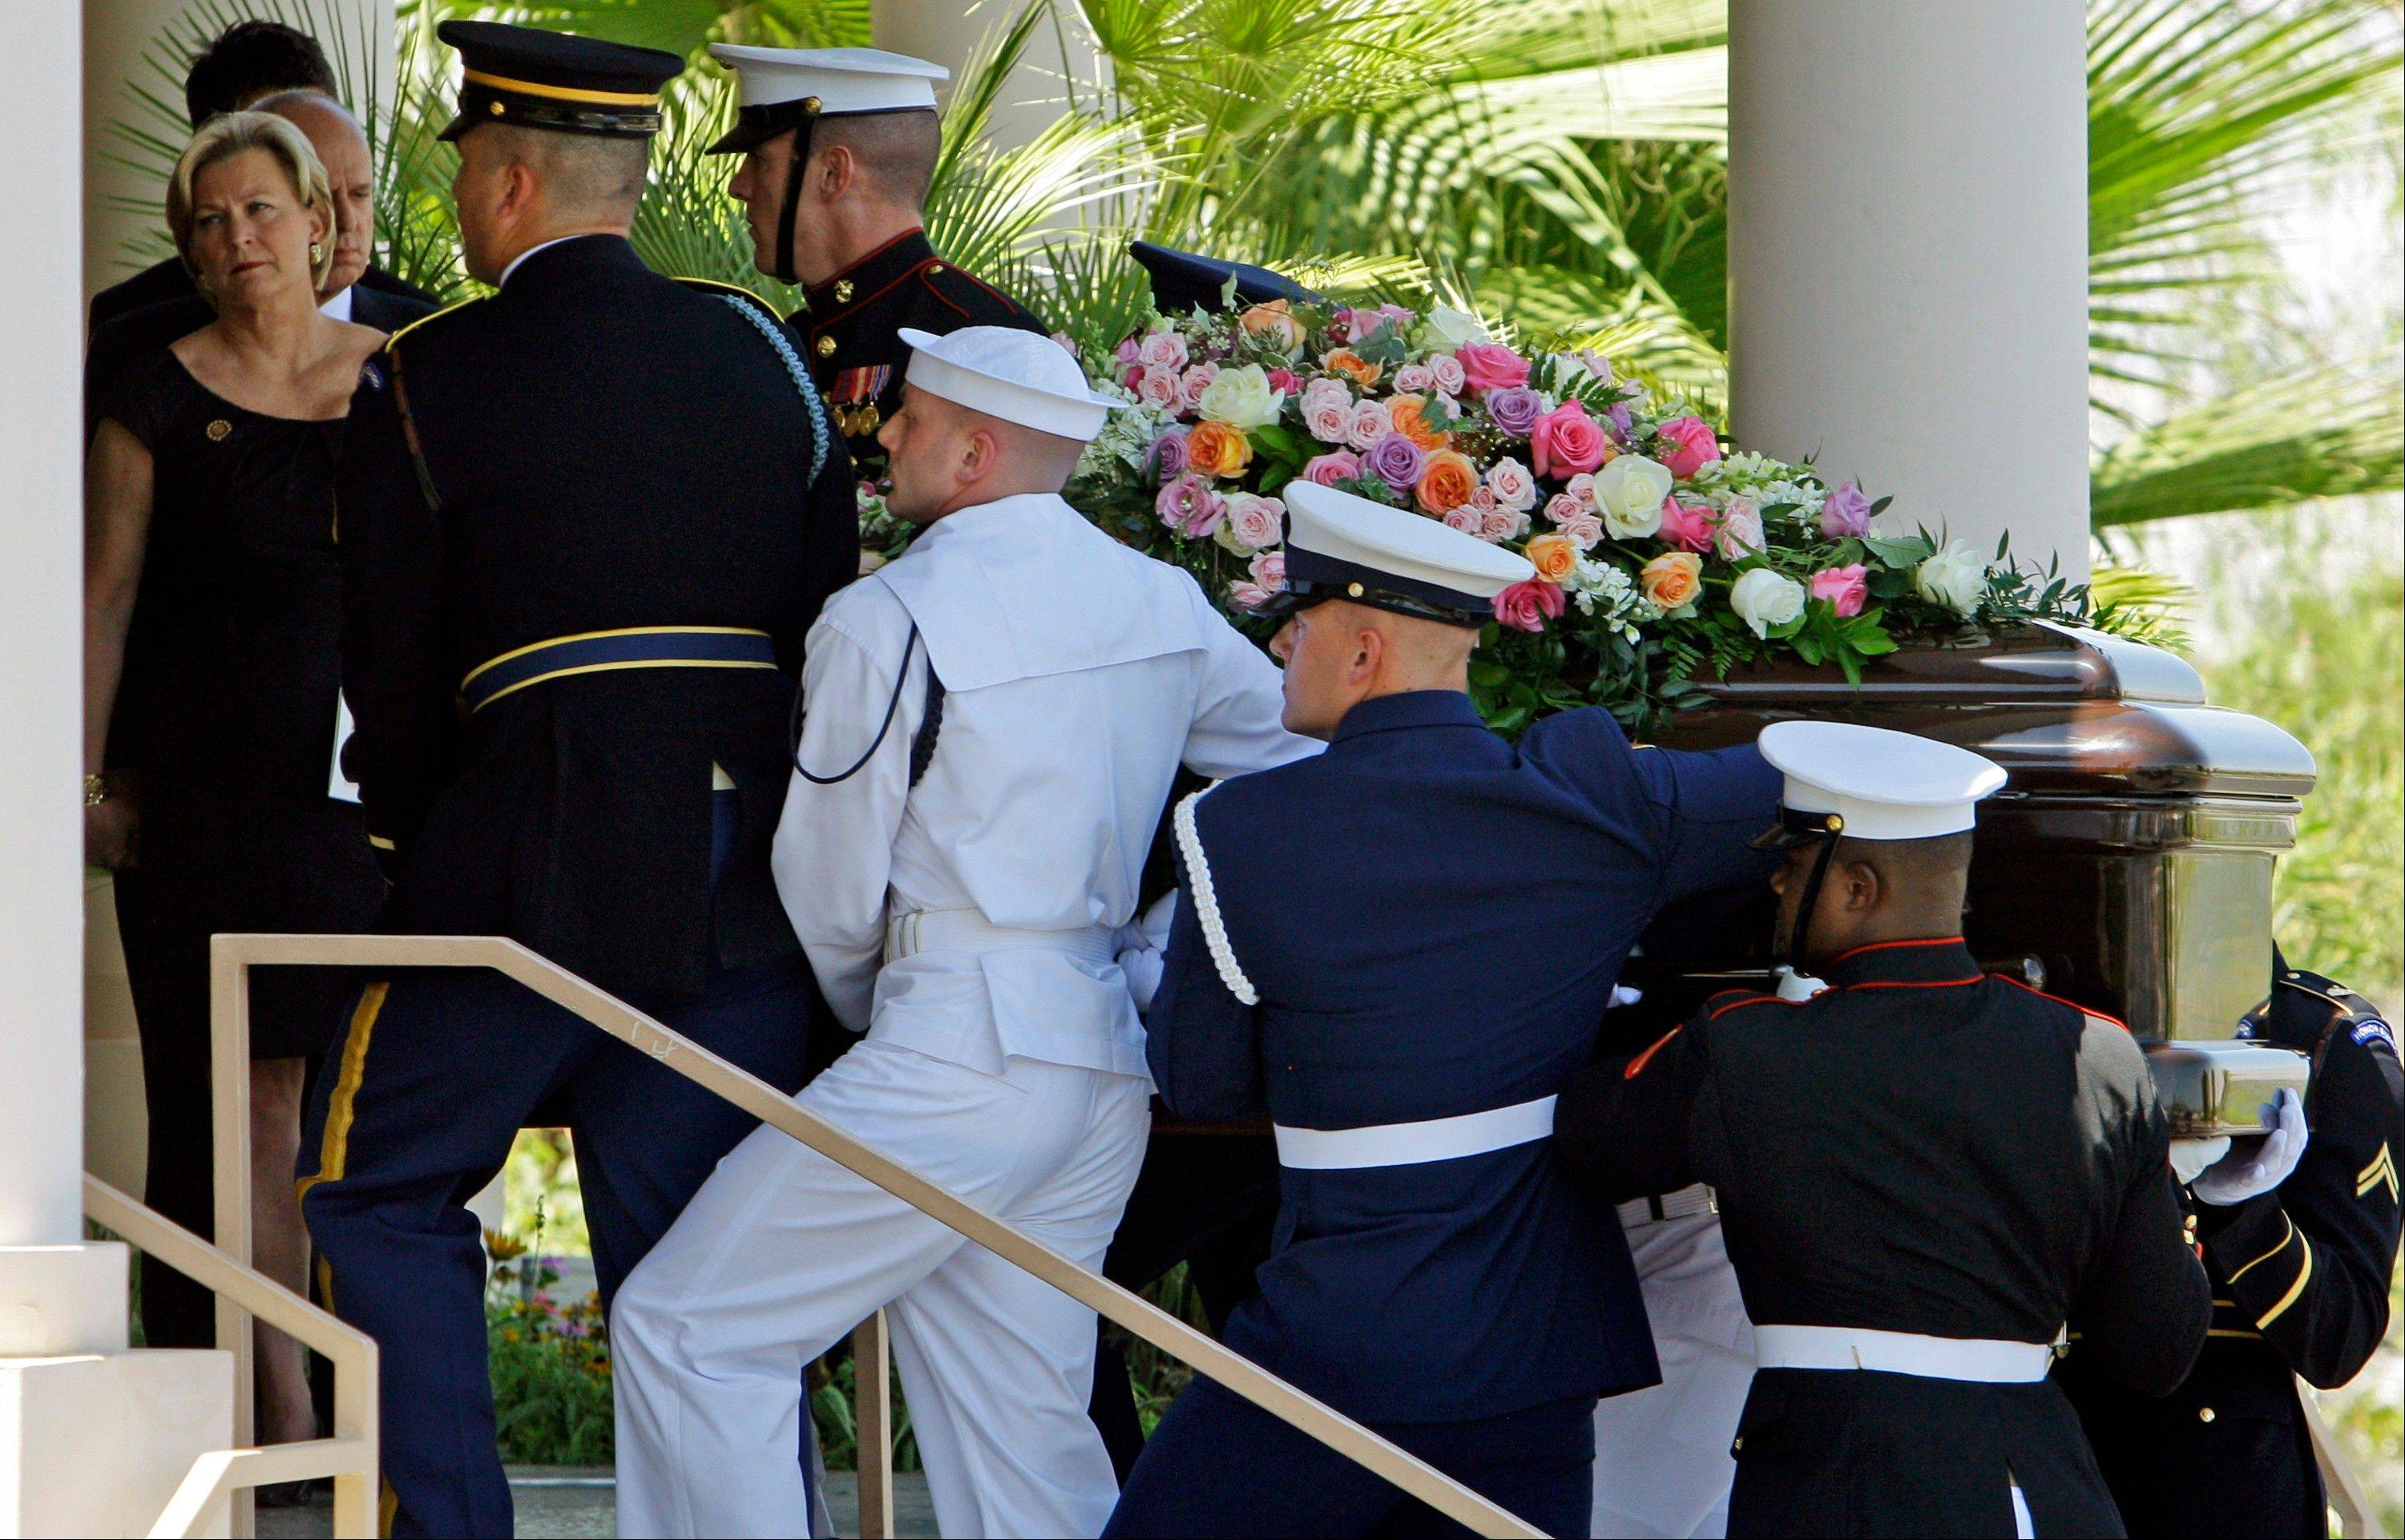 A military honor guard carries the casket of former first lady Betty Ford into her funeral at St. Margaret's Episcopal Church in Palm Desert, Calif., on Tuesday.